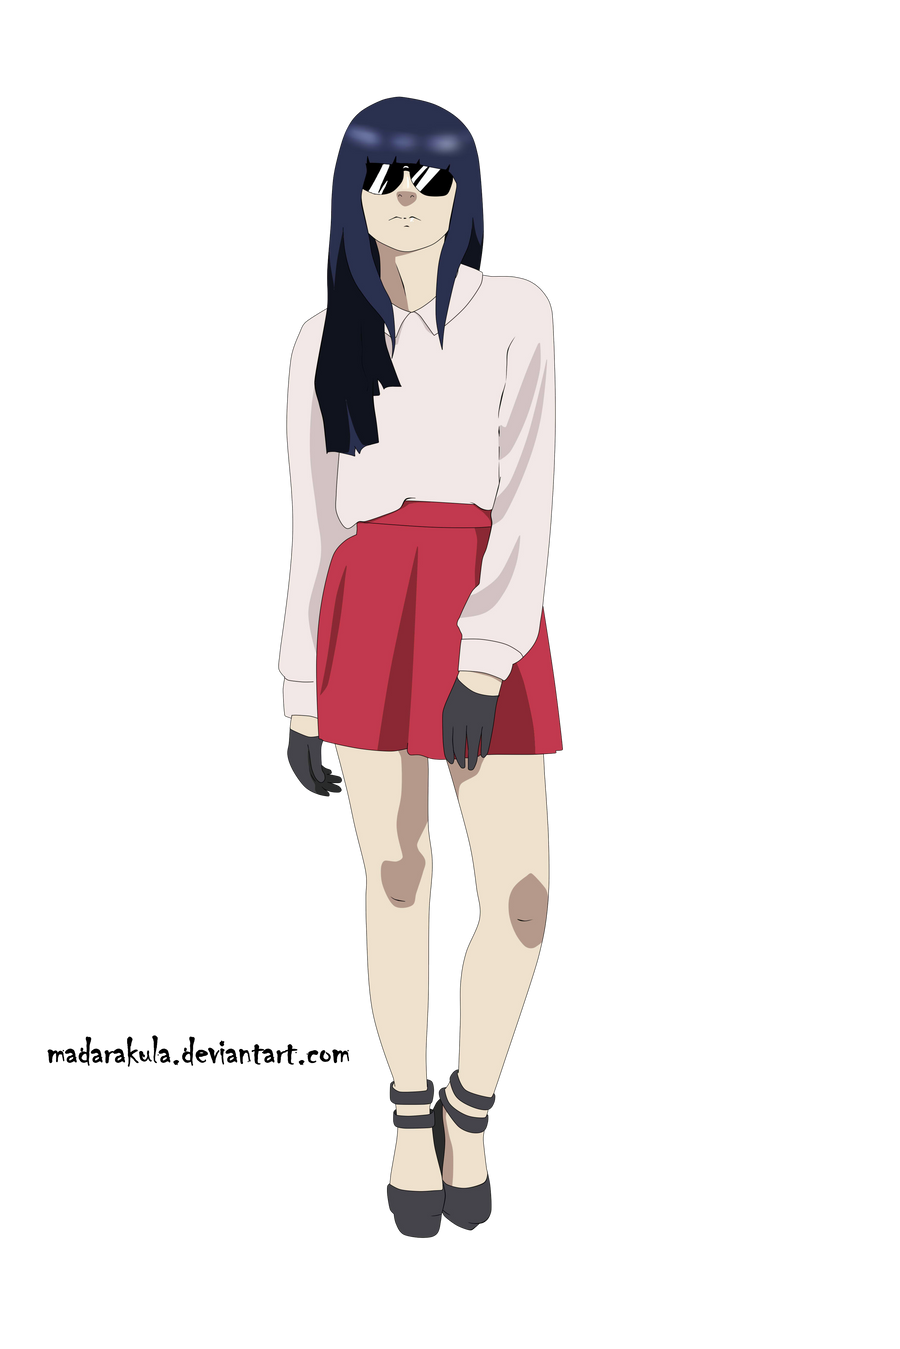 Hinata Hyuuga by Madarakula on DeviantArt